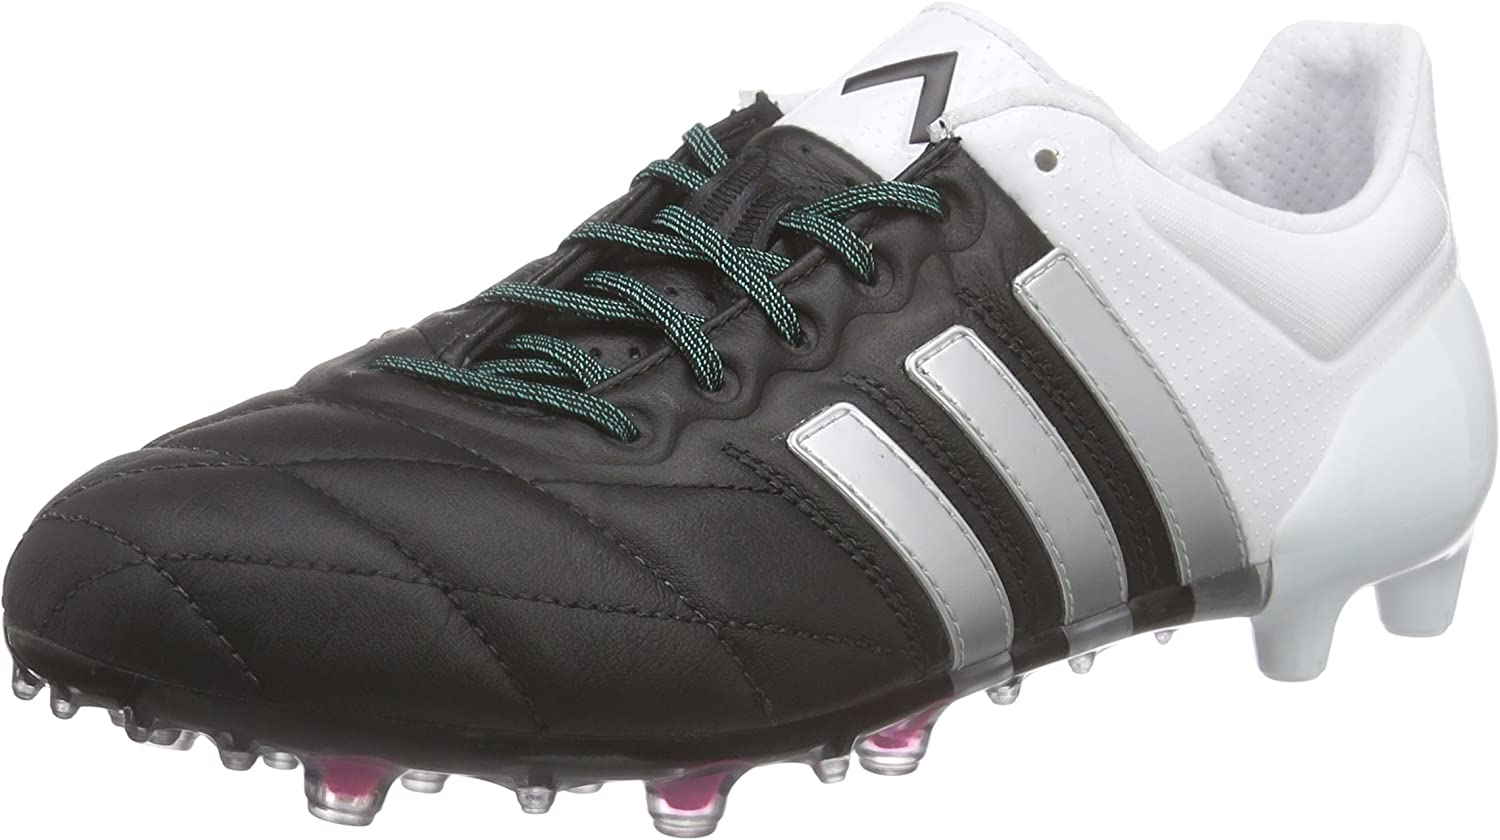 Lirio contacto Violar  adidas Ace 15.1 FG/AG, Men's Football Boots: Amazon.co.uk: Shoes & Bags